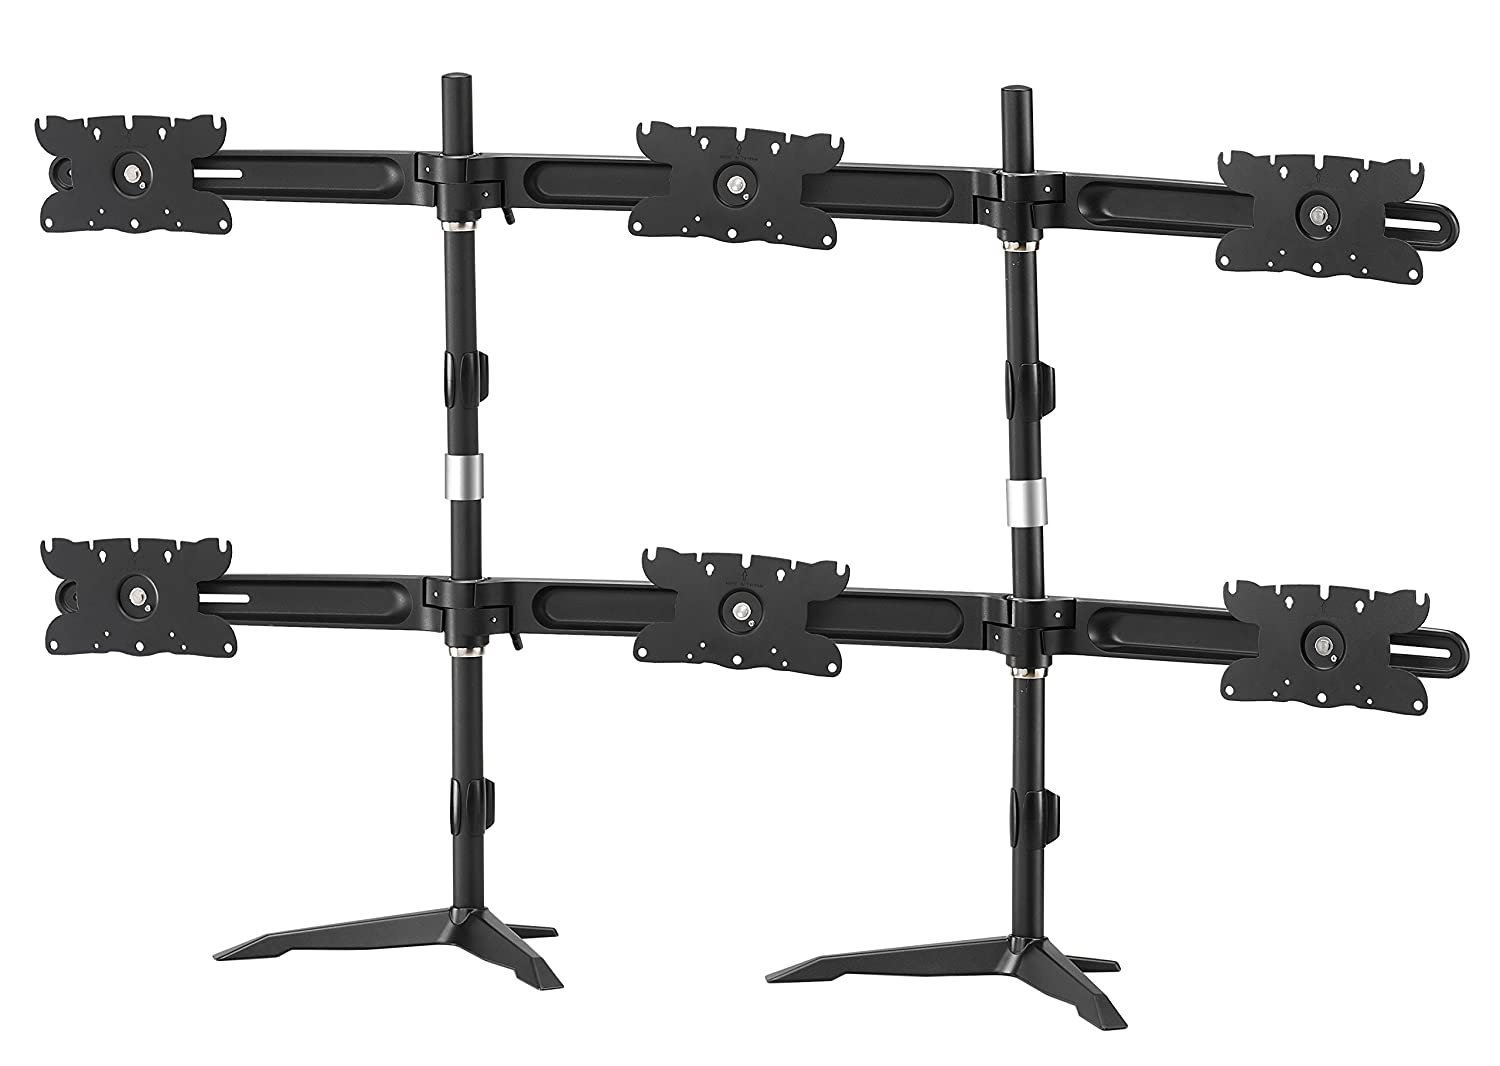 Amer AMR6S32 Hex Monitor Stand (up to 6x 32' monitors)